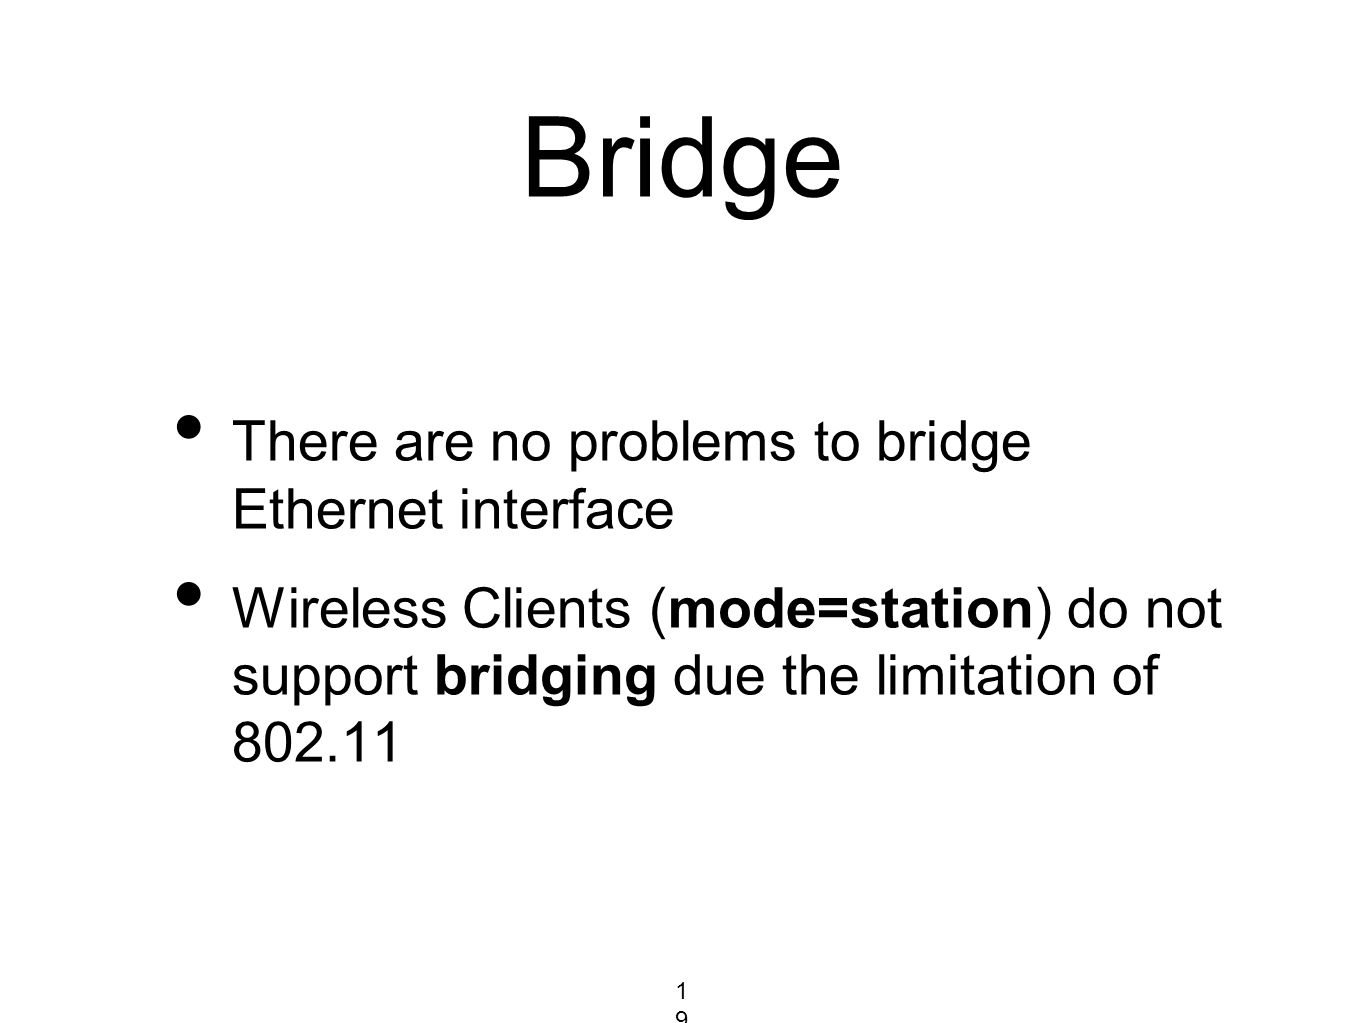 Bridge There are no problems to bridge Ethernet interface Wireless Clients (mode=station) do not support bridging due the limitation of 802.11 1961961